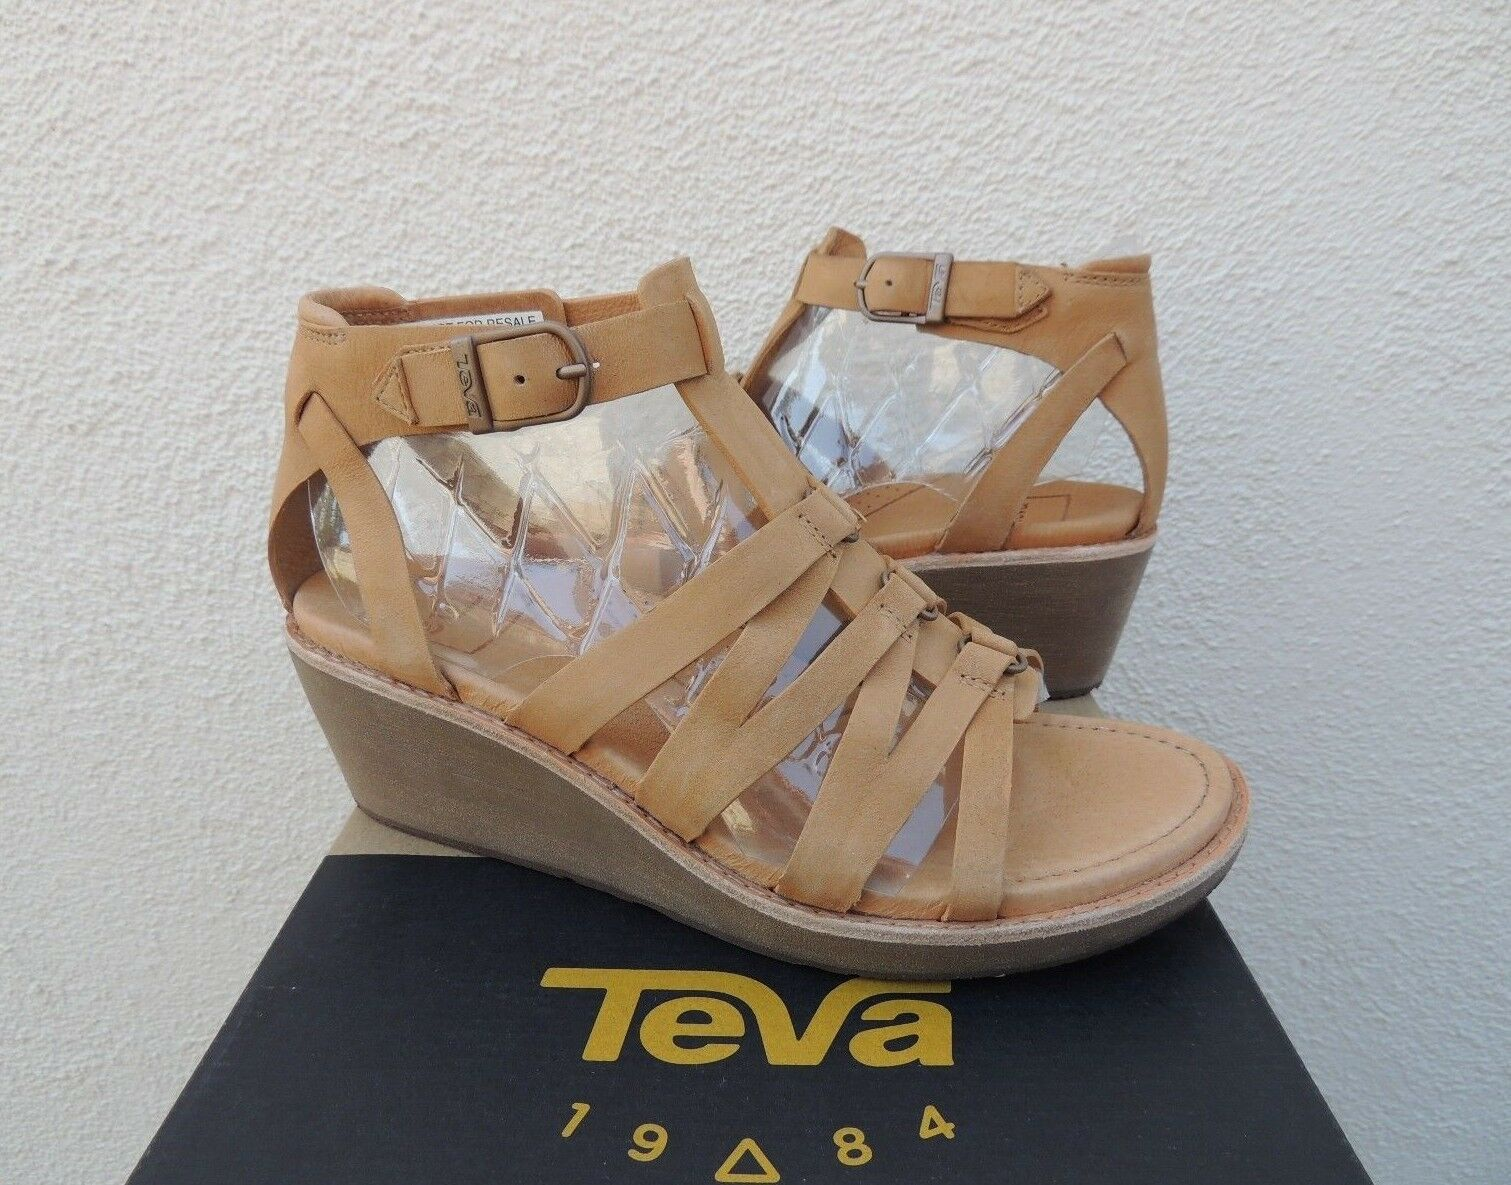 TEVA RARE ENCANTA TAN LEATHER LEATHER LEATHER GLADIATOR WEDGE SANDALS  HEELS, US 7  EUR 38  NEW 333893